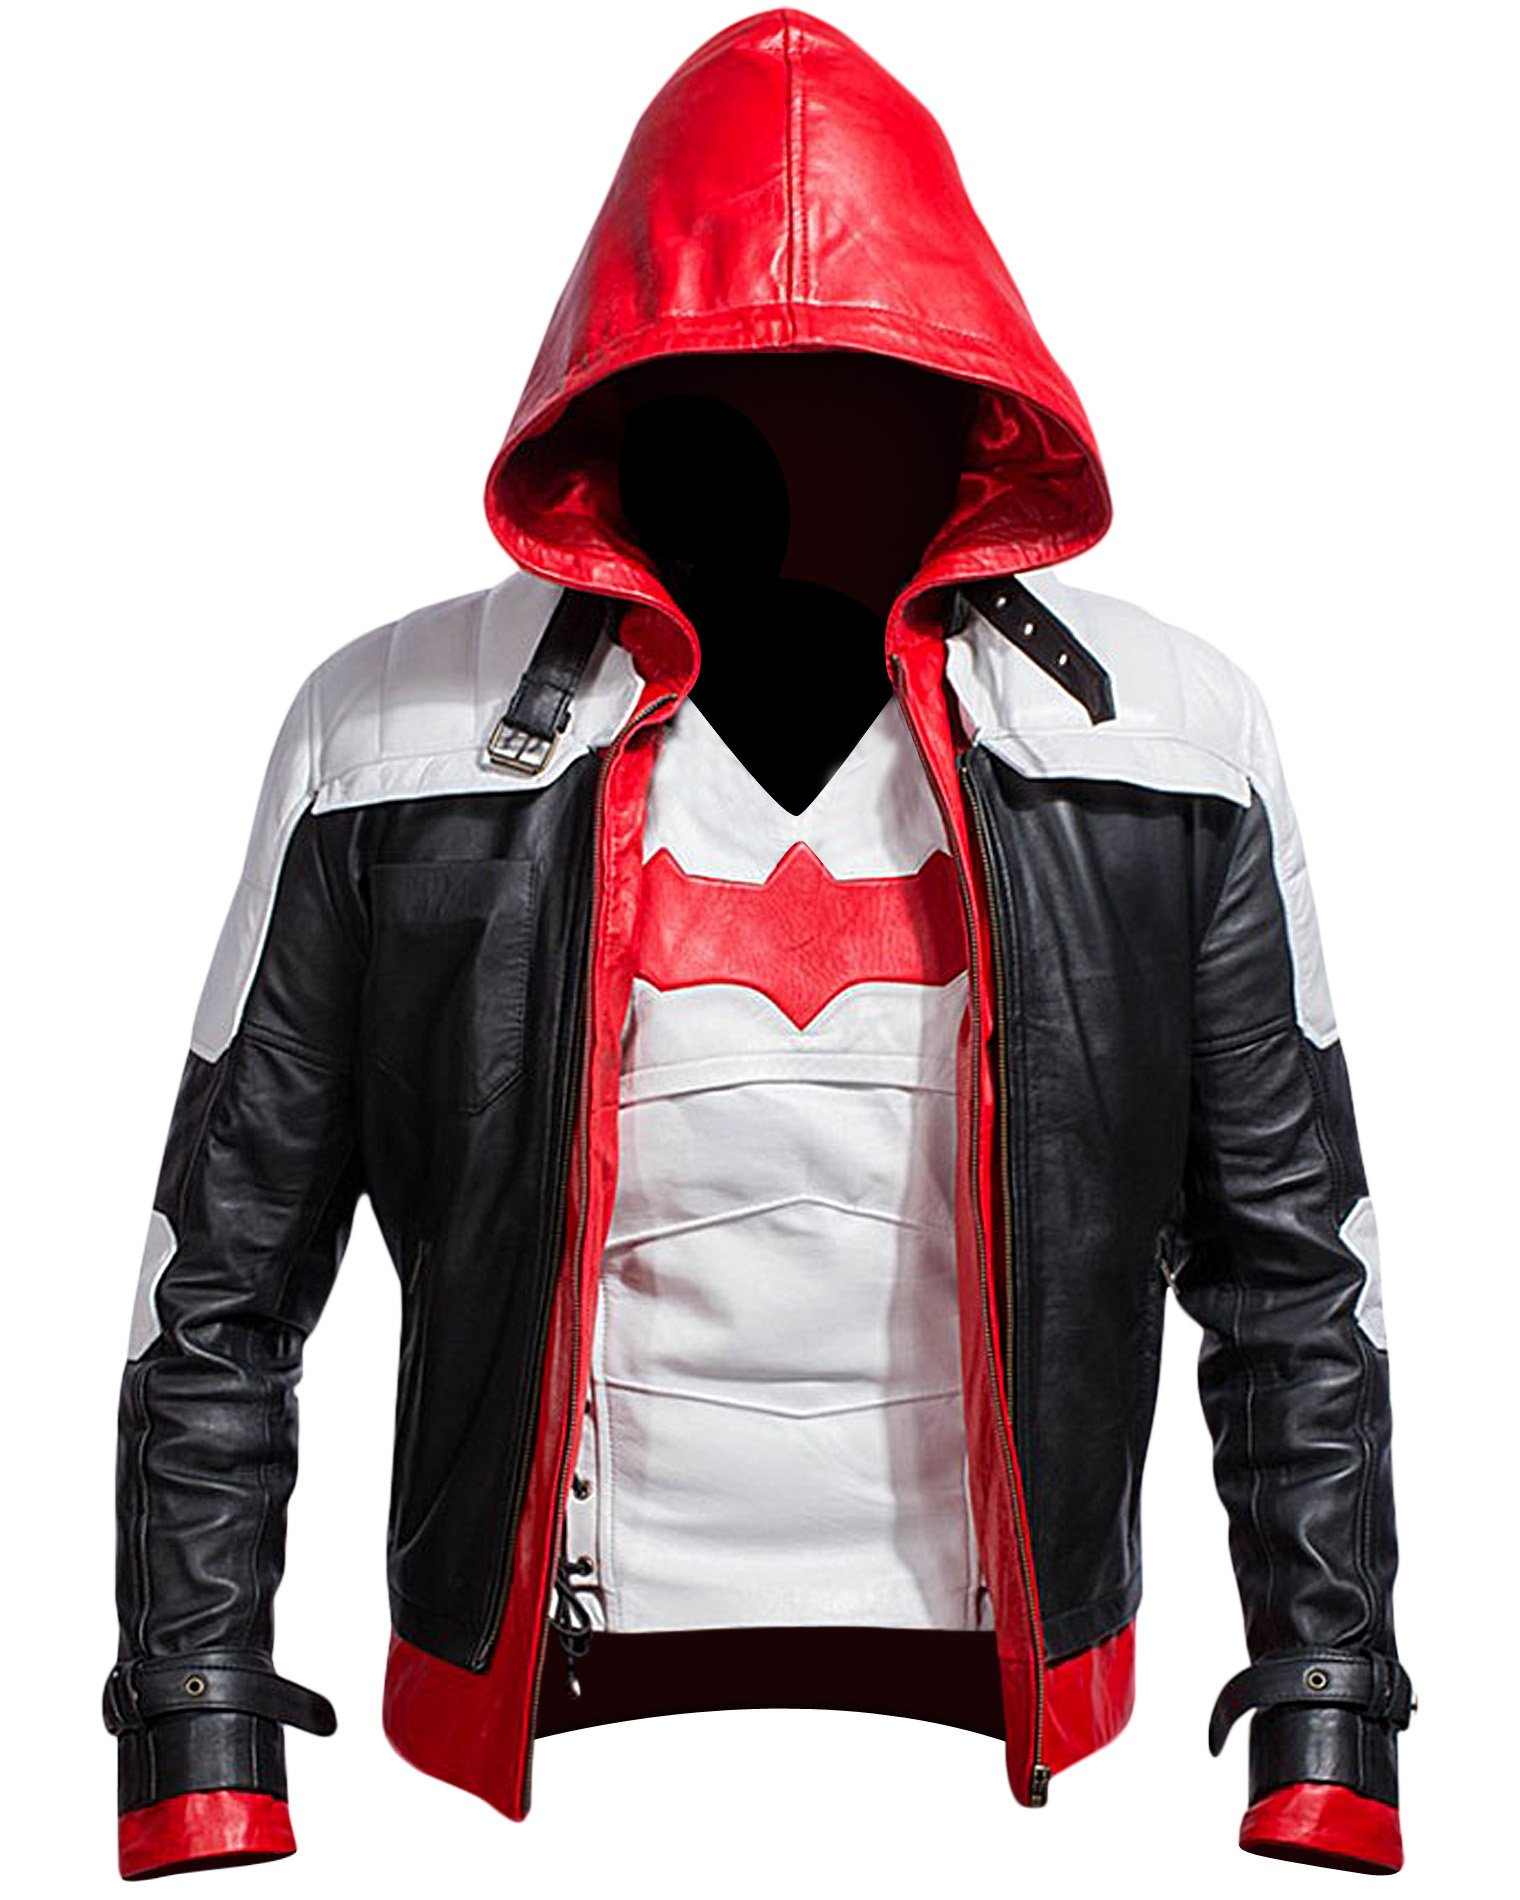 Cup Of Fashion Batman Arkham Knight Leather Jacket + Vest 2 in 1 (Medium, White) by Cup Of Fashion